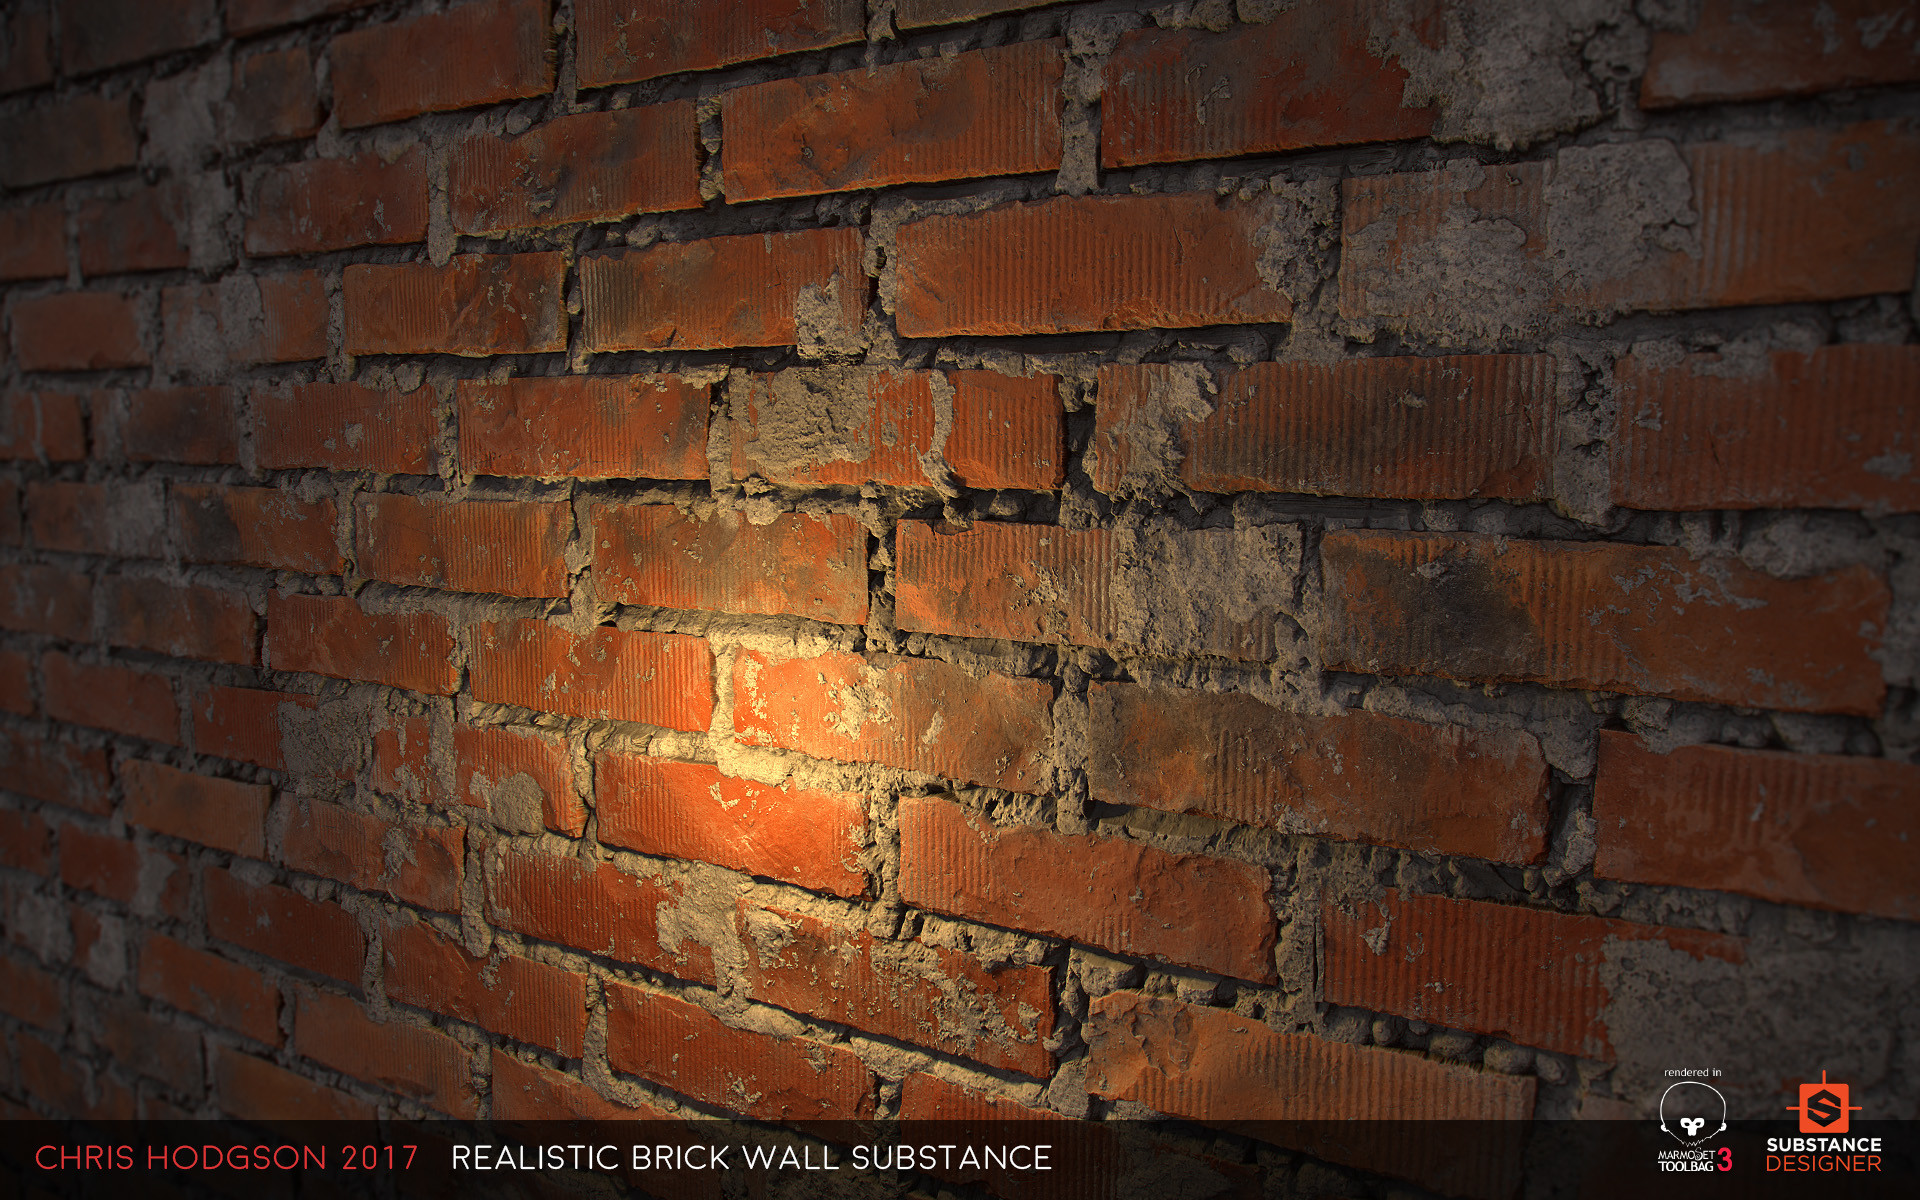 chris hodgson realistic brick wall substance designer. Black Bedroom Furniture Sets. Home Design Ideas